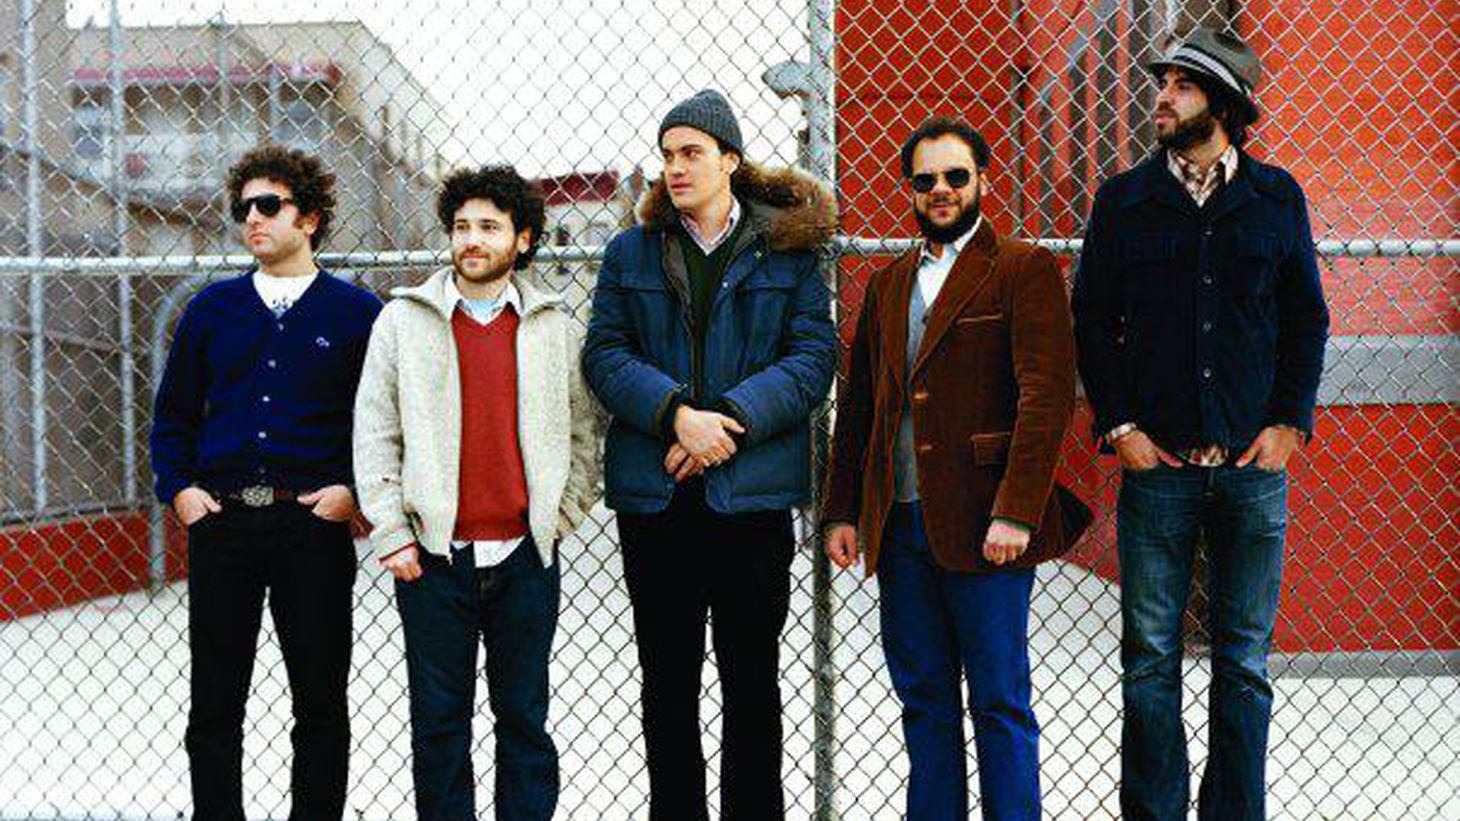 Acclaimed Brooklyn-based purveyors of soul and funk, Menahan Street Band get into a deep groove in their live shows and we're excited to experience it for ourselves...